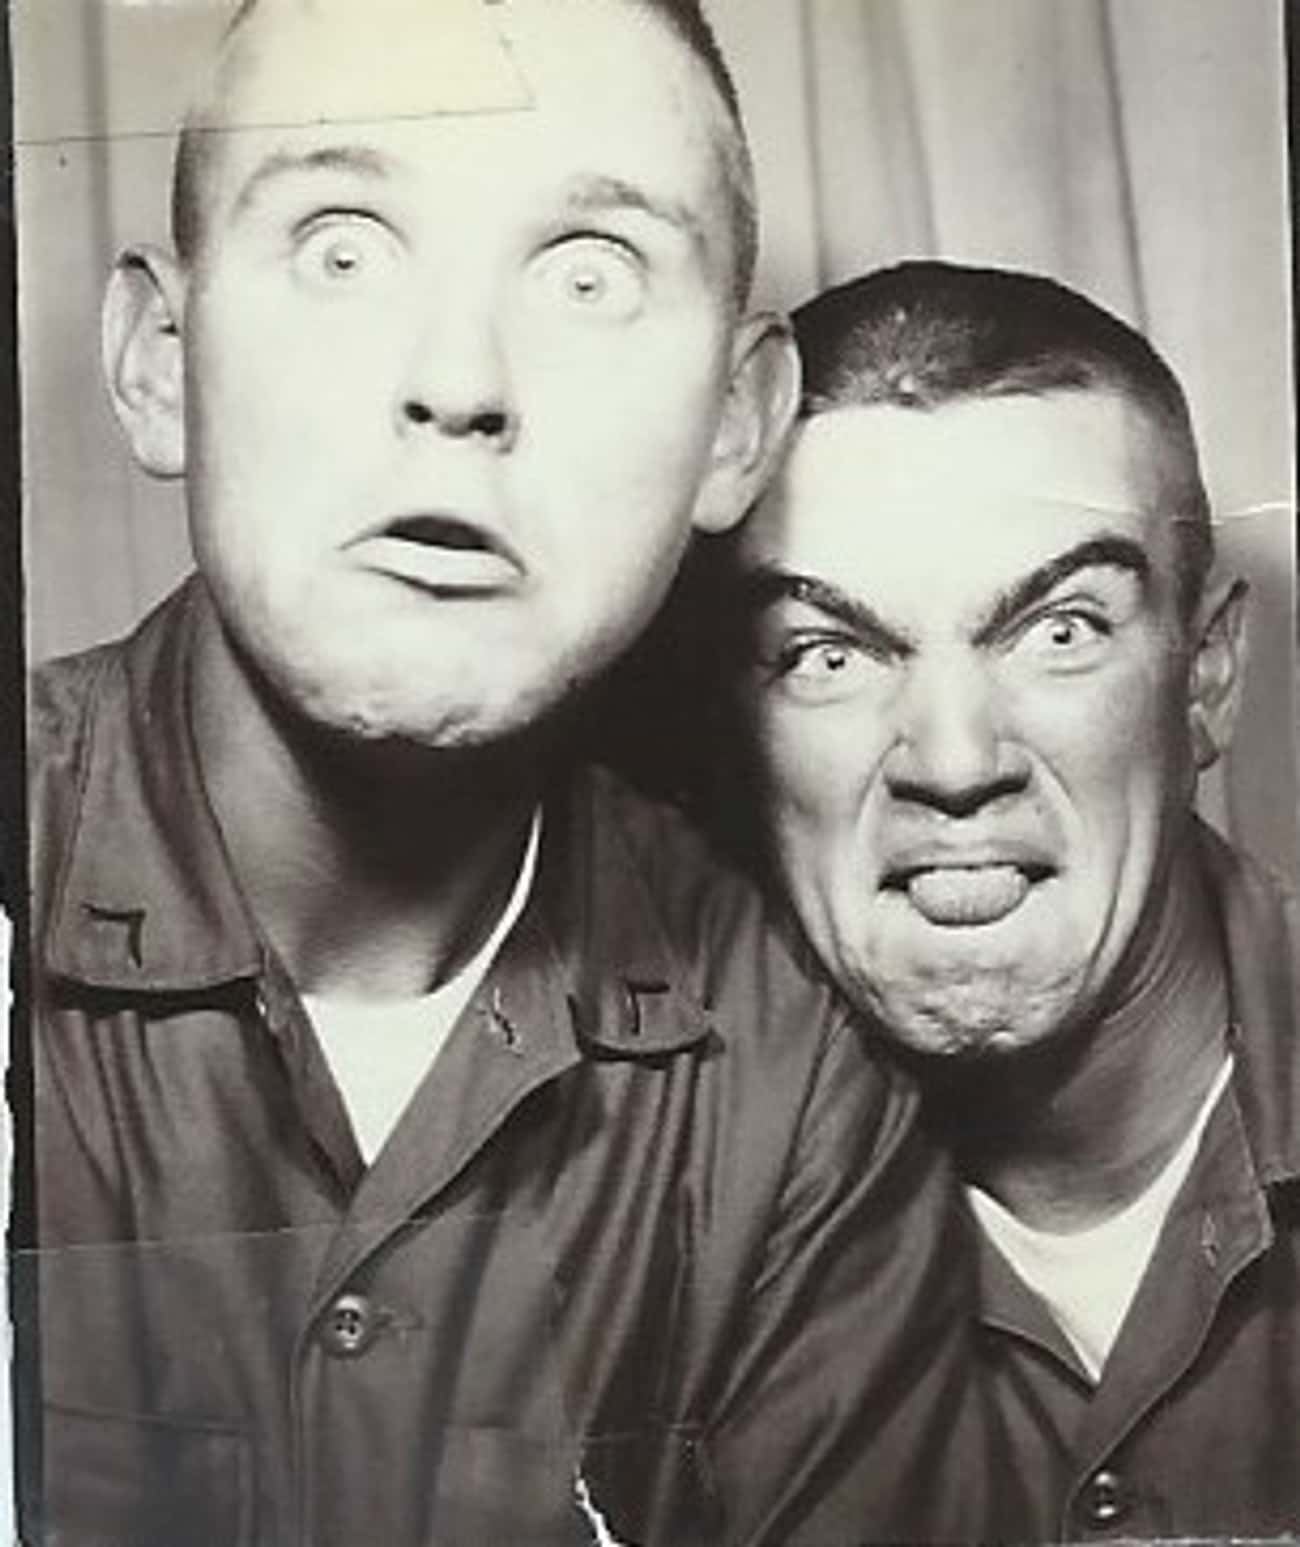 Goofing Off In A Photo Booth is listed (or ranked) 4 on the list Cool Old School Pictures From Vietnam